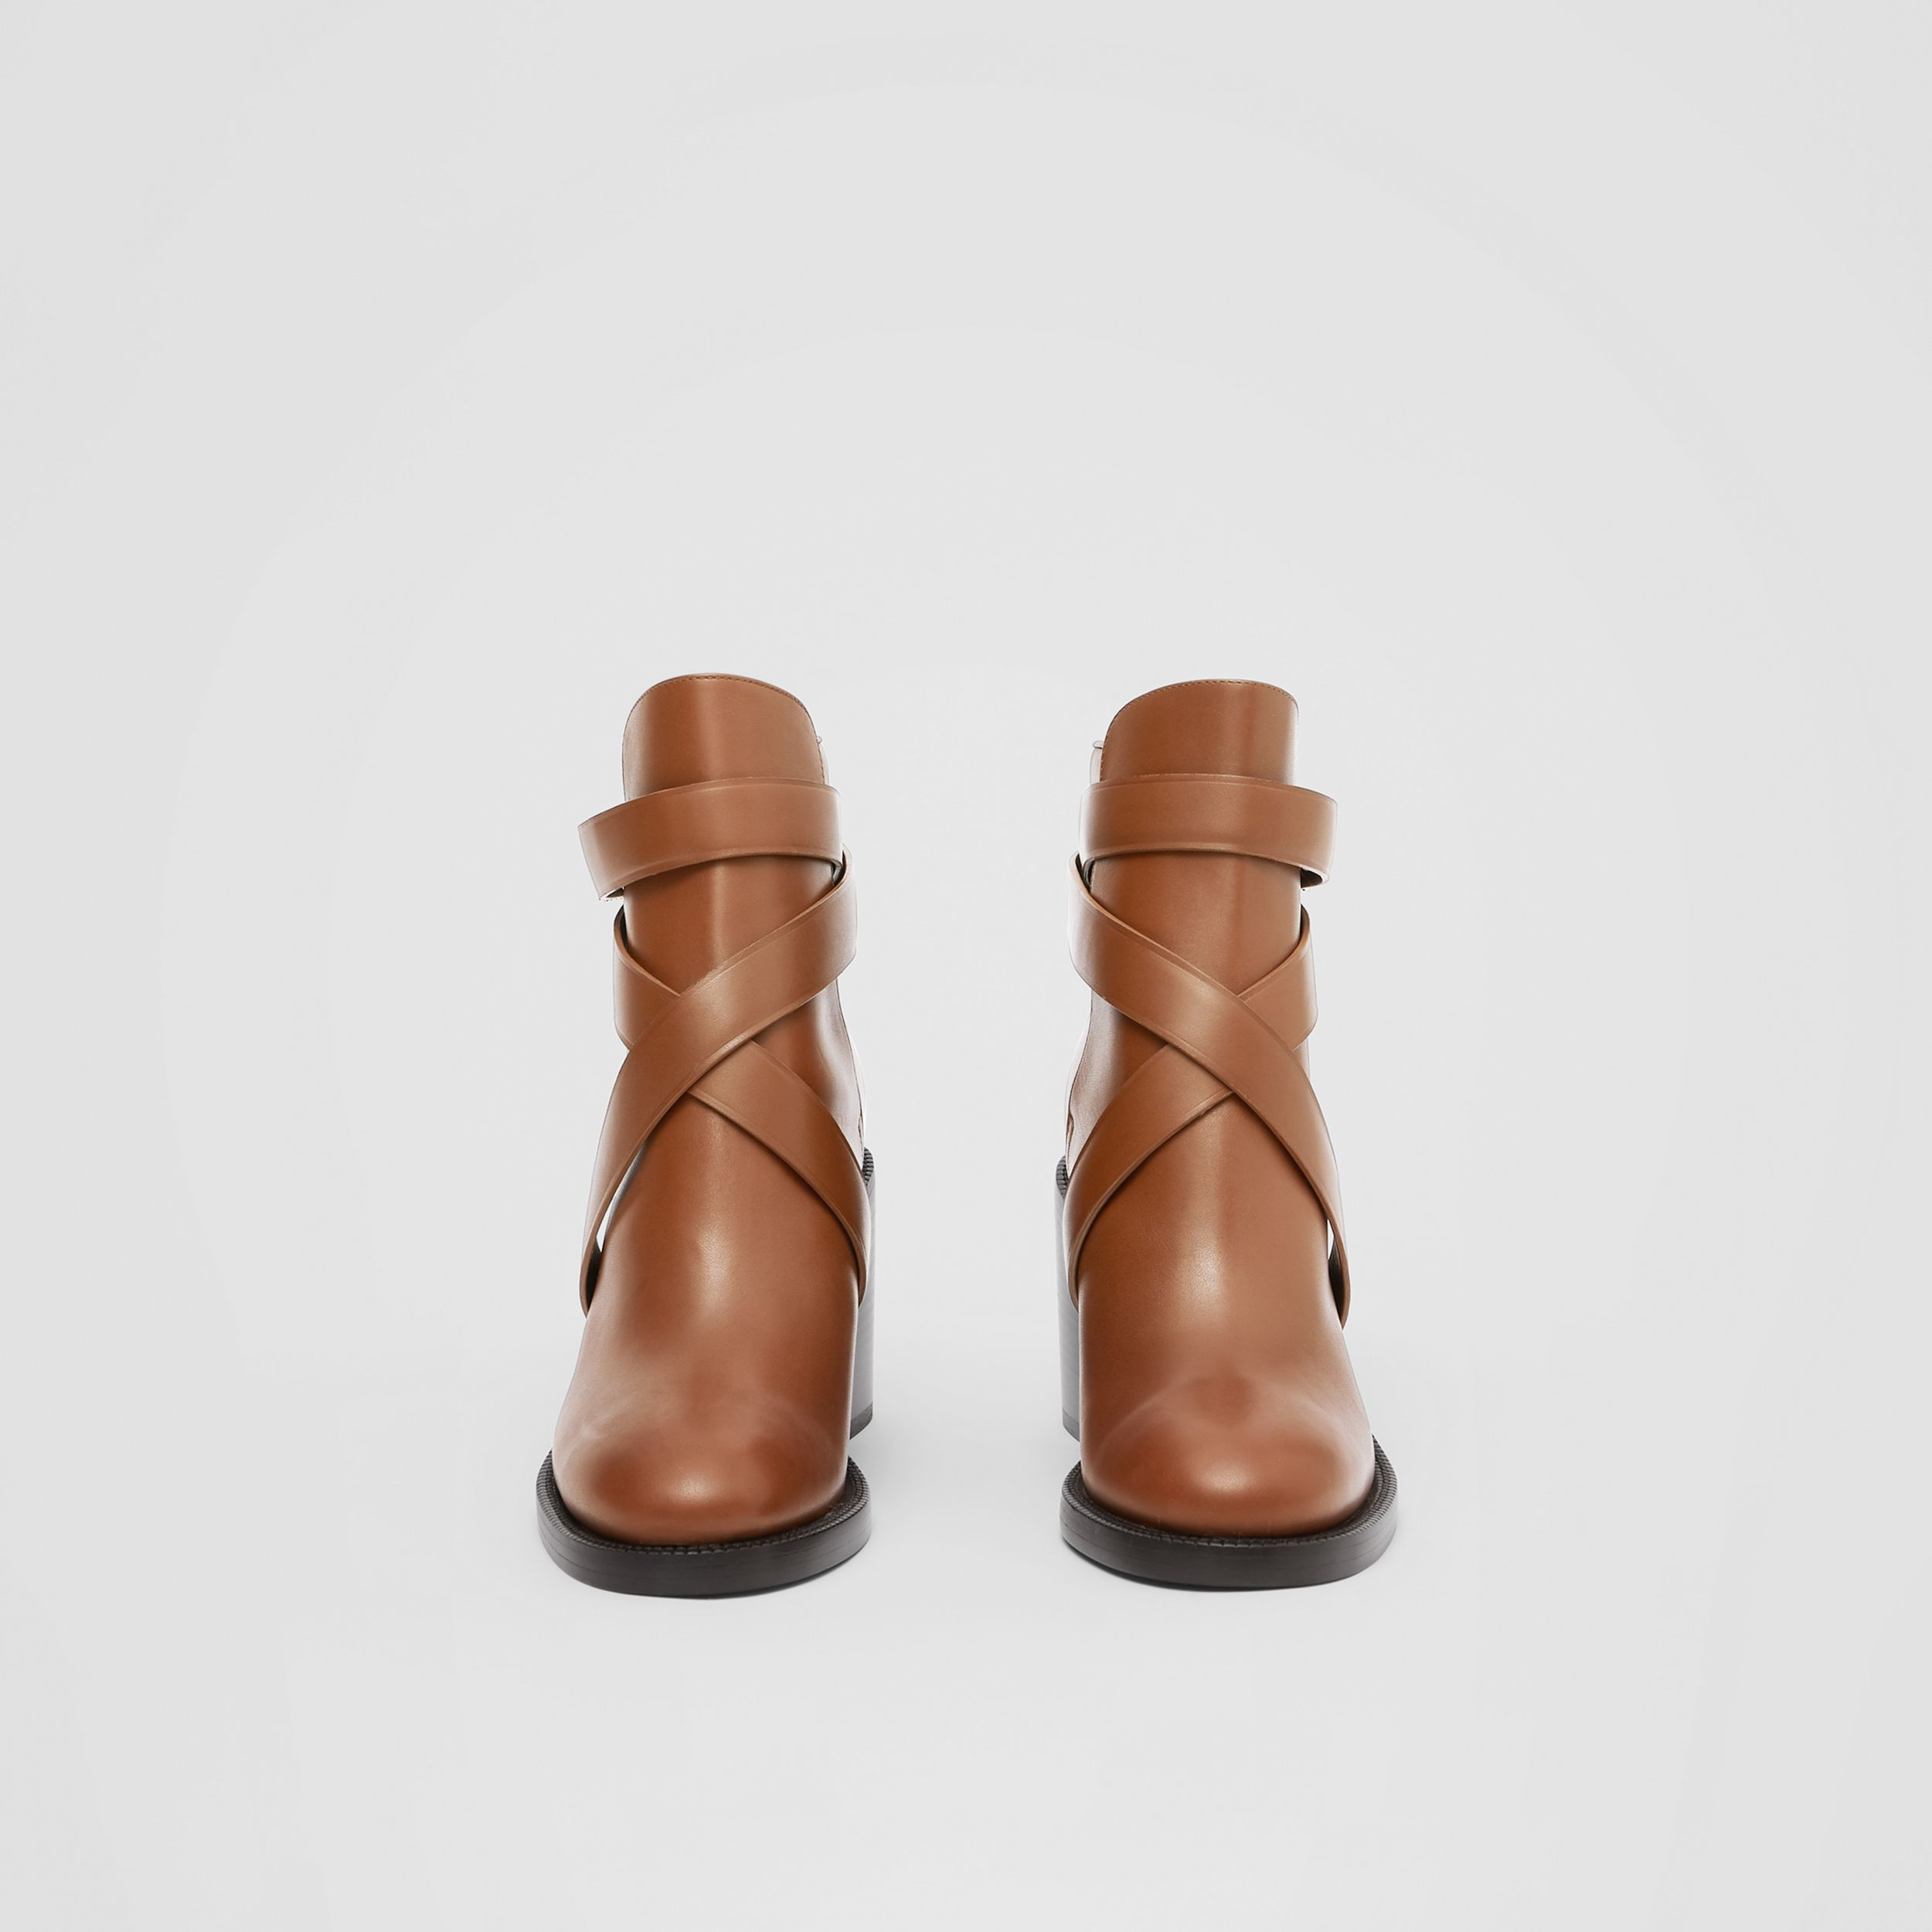 Monogram Motif Leather Ankle Boots in Tan - Women | Burberry United Kingdom - 4